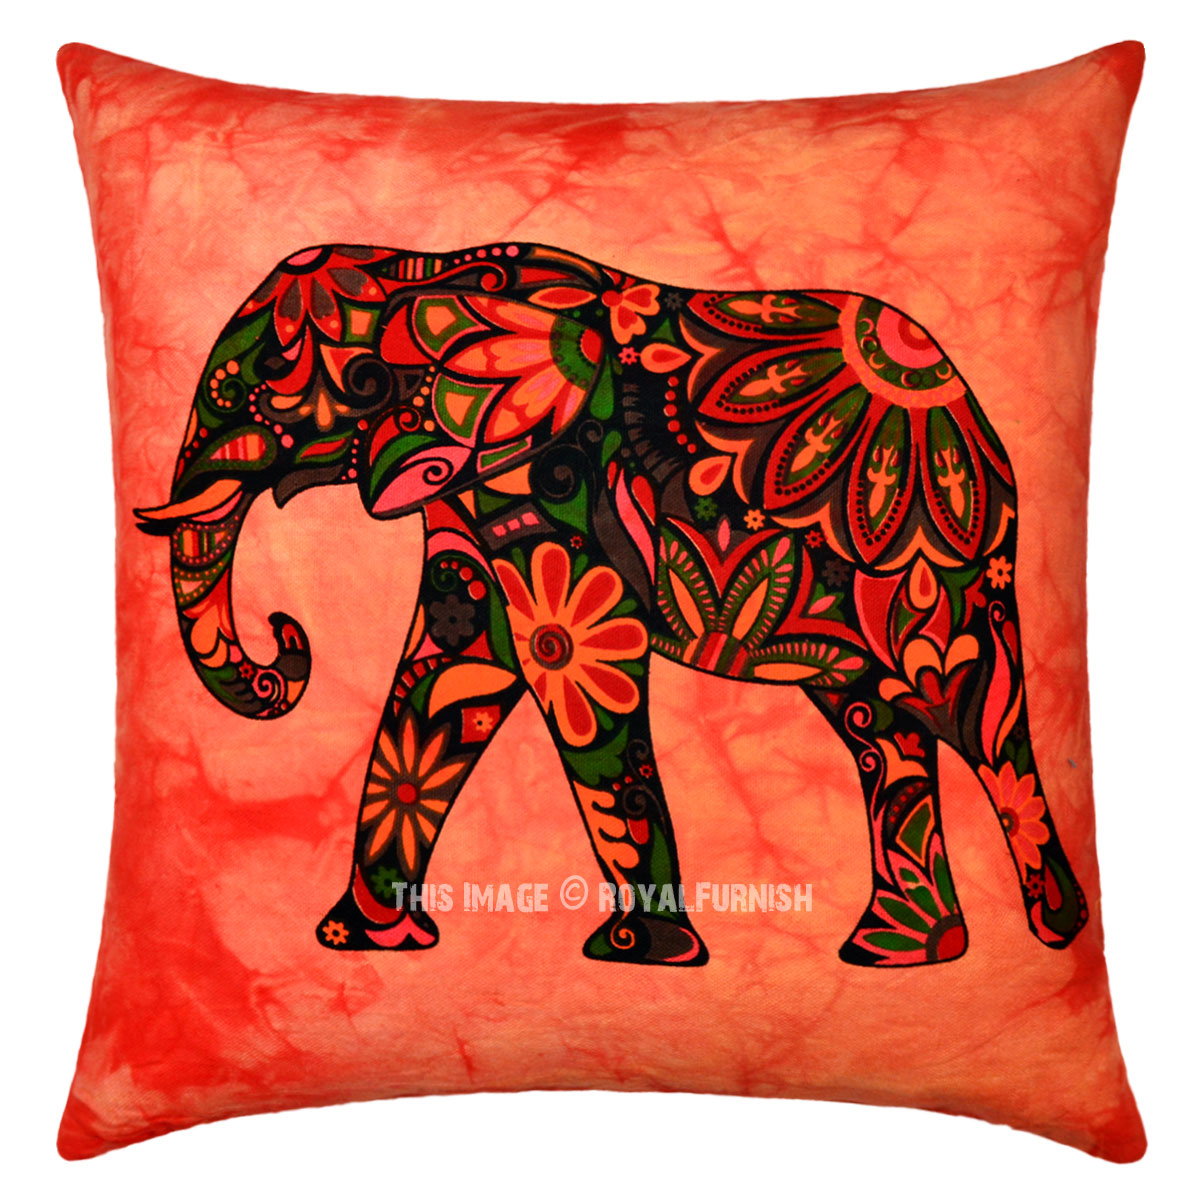 Decorative Pillow Cover Mcqueen Red Multi : Red Multi Decorative Tie Dye Printed Asian Elephant Throw Pillow Cover 16X16 - RoyalFurnish.com